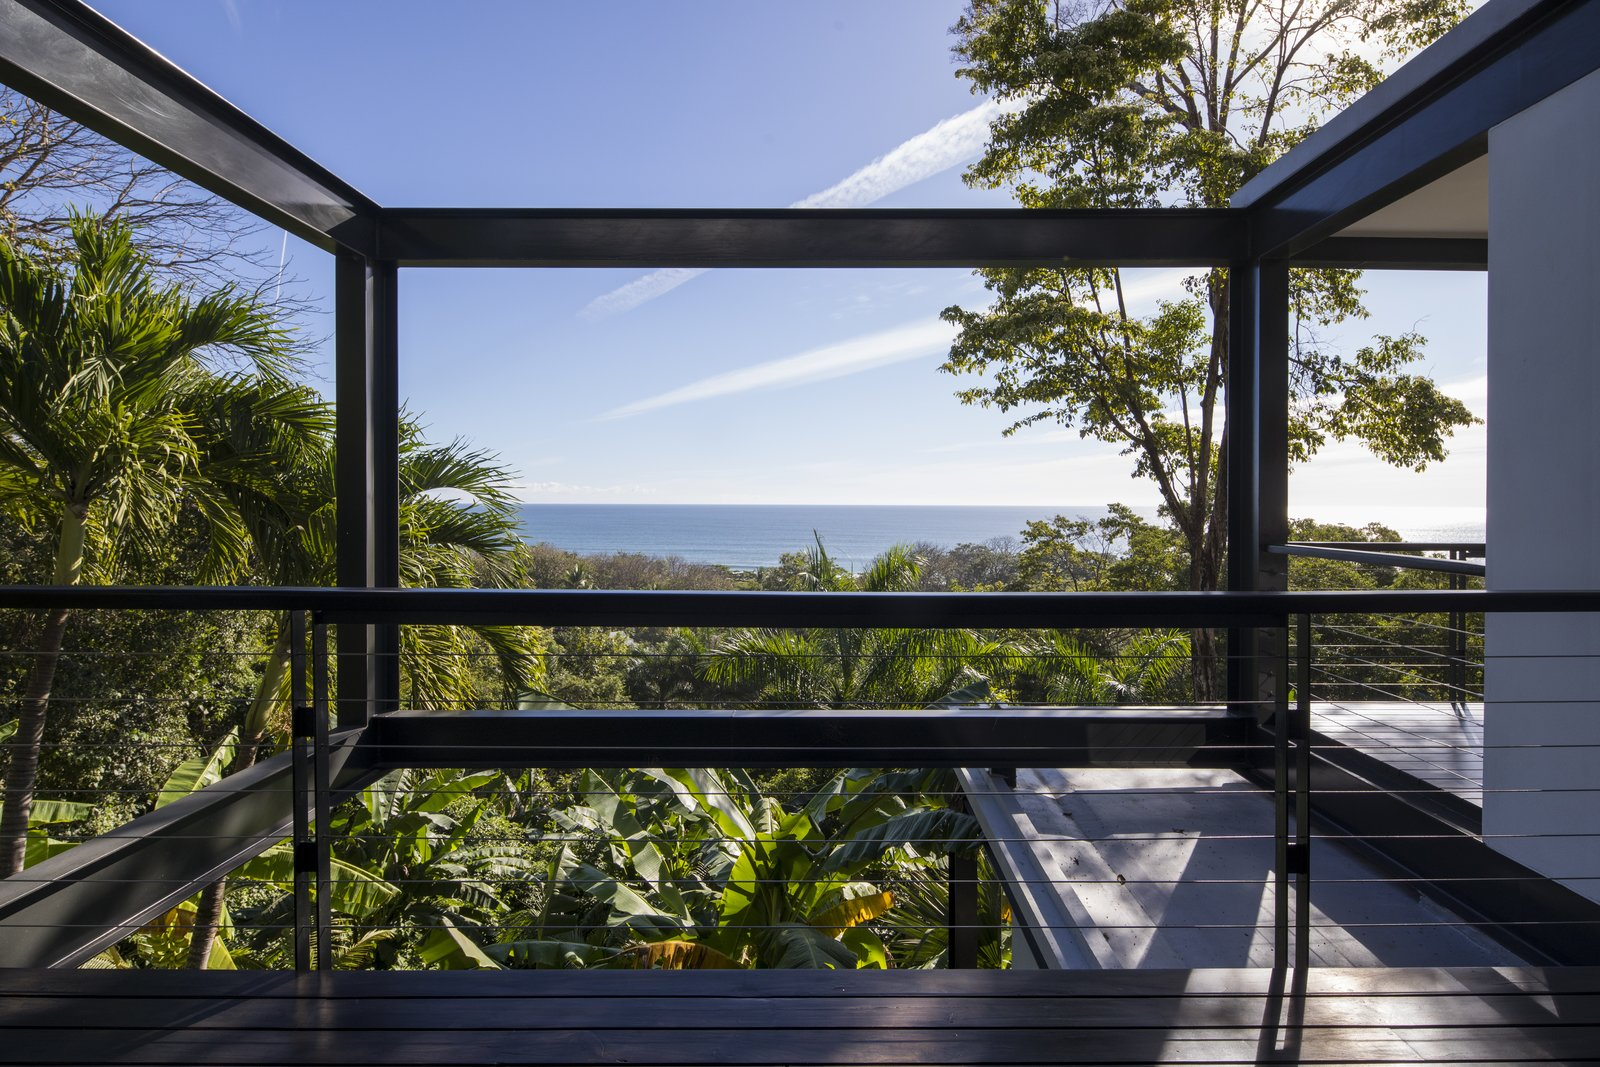 Outdoor, Decking, Trees, Wire, Wood, Metal, and Back Yard The villa's location is just a stone's throw from the sea.  Best Outdoor Decking Metal Photos from Slip Away to These Sleek New Villas in a Costa Rican Forest